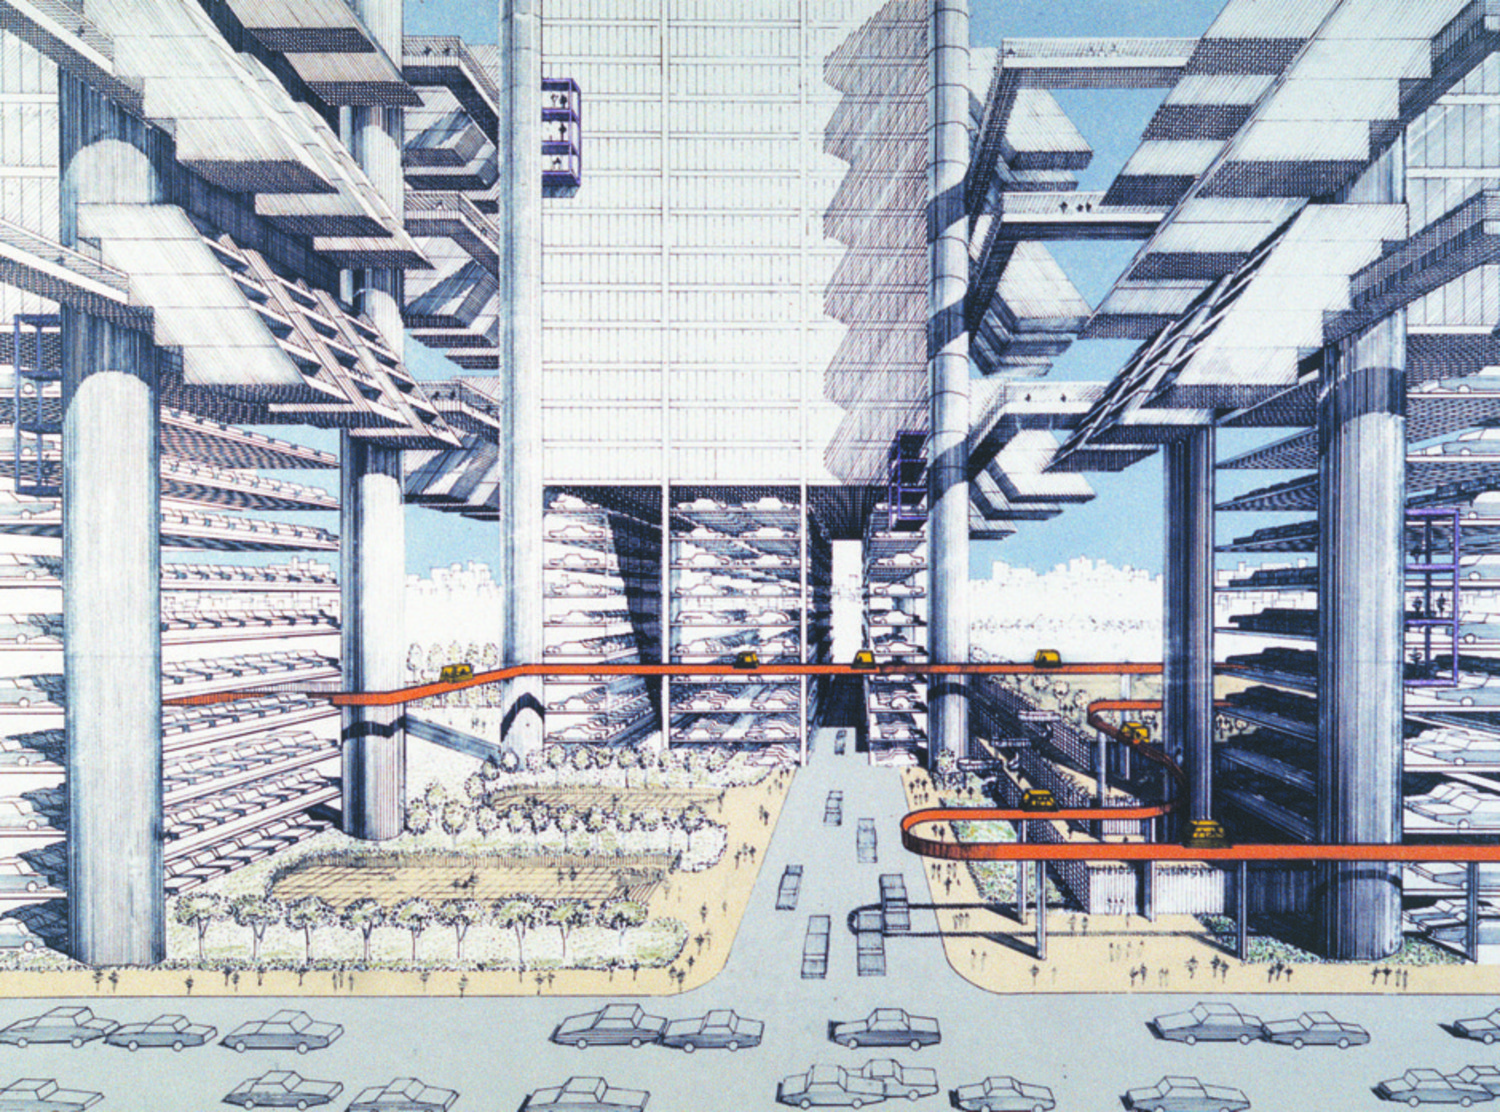 """In his 1967 """"City Corridor"""" plan, the architect Paul Rudolph reimagined the neighborhoods around the (also never built) Lower Manhattan Expressway as a """"sinew of buildings, bridges, terraces, plazas, overlooks, walkways, people movers, subways, streets, and freeways, all drawn together into one exquisite whole."""""""